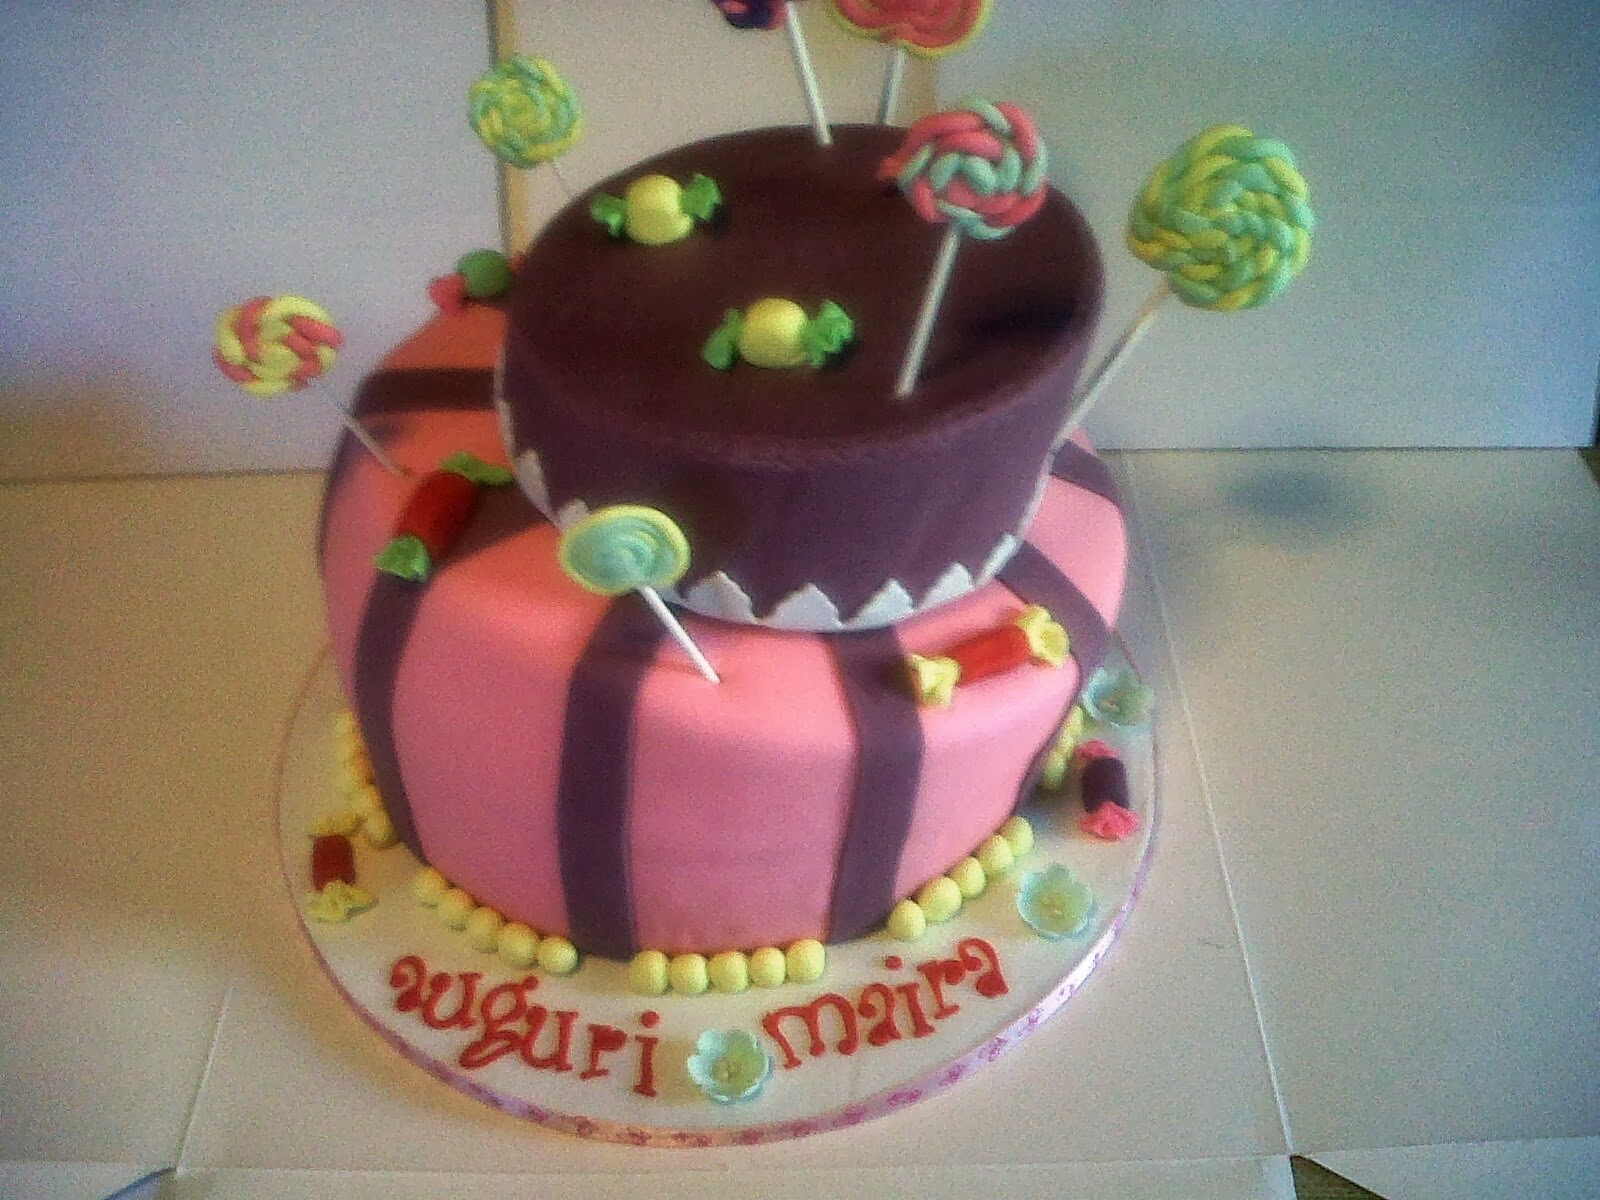 wonky cake with candy and lollipop - auguri maira!